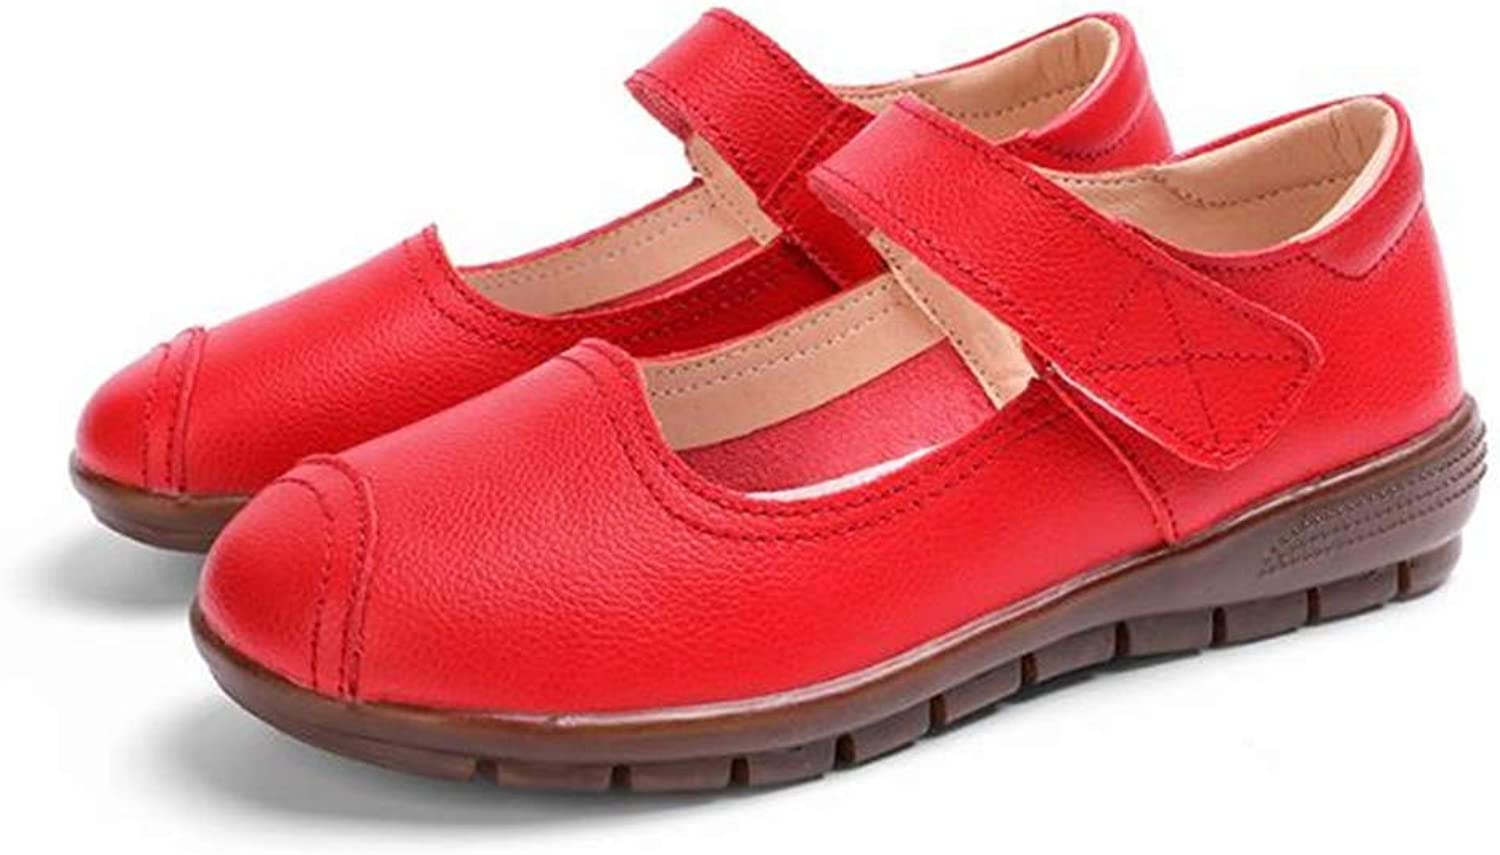 IINFINE Women's Fashion Comfort Slip-on Loafer Driving shoes